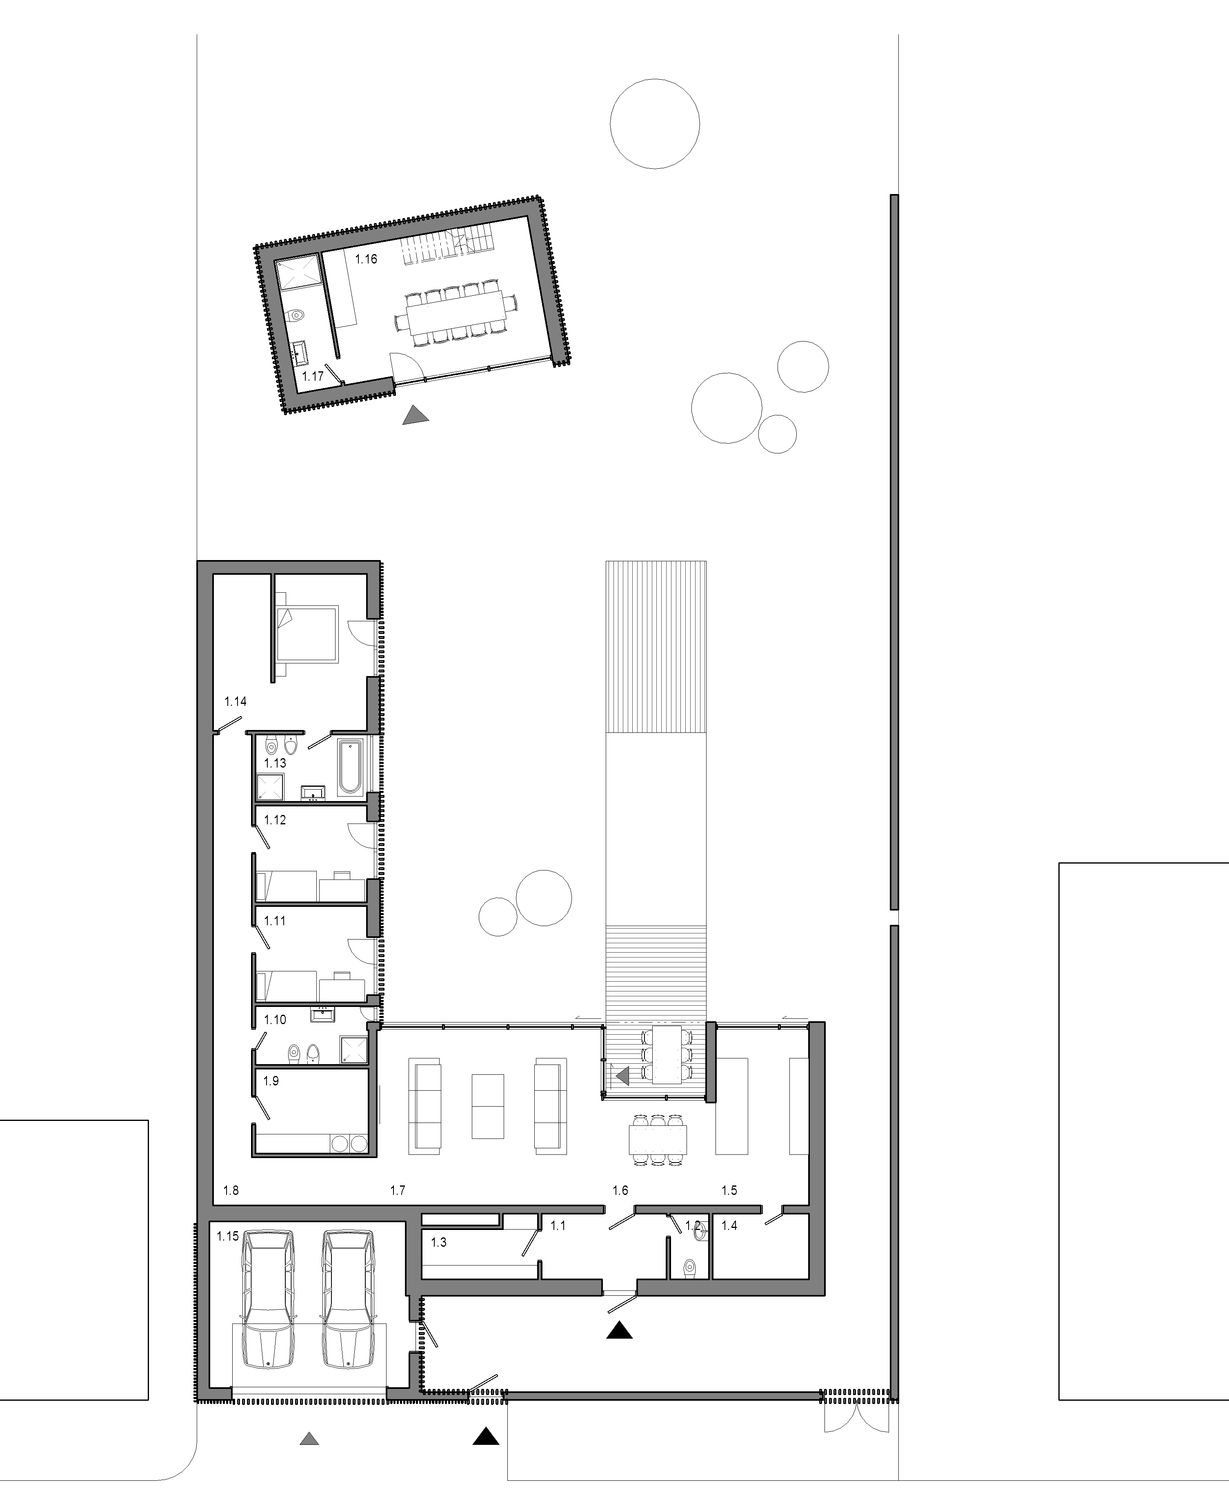 https://www.light4space.sk/img1/projekty/vila-kzc/919_as9_-_floor_plan_-_1-np.jpg